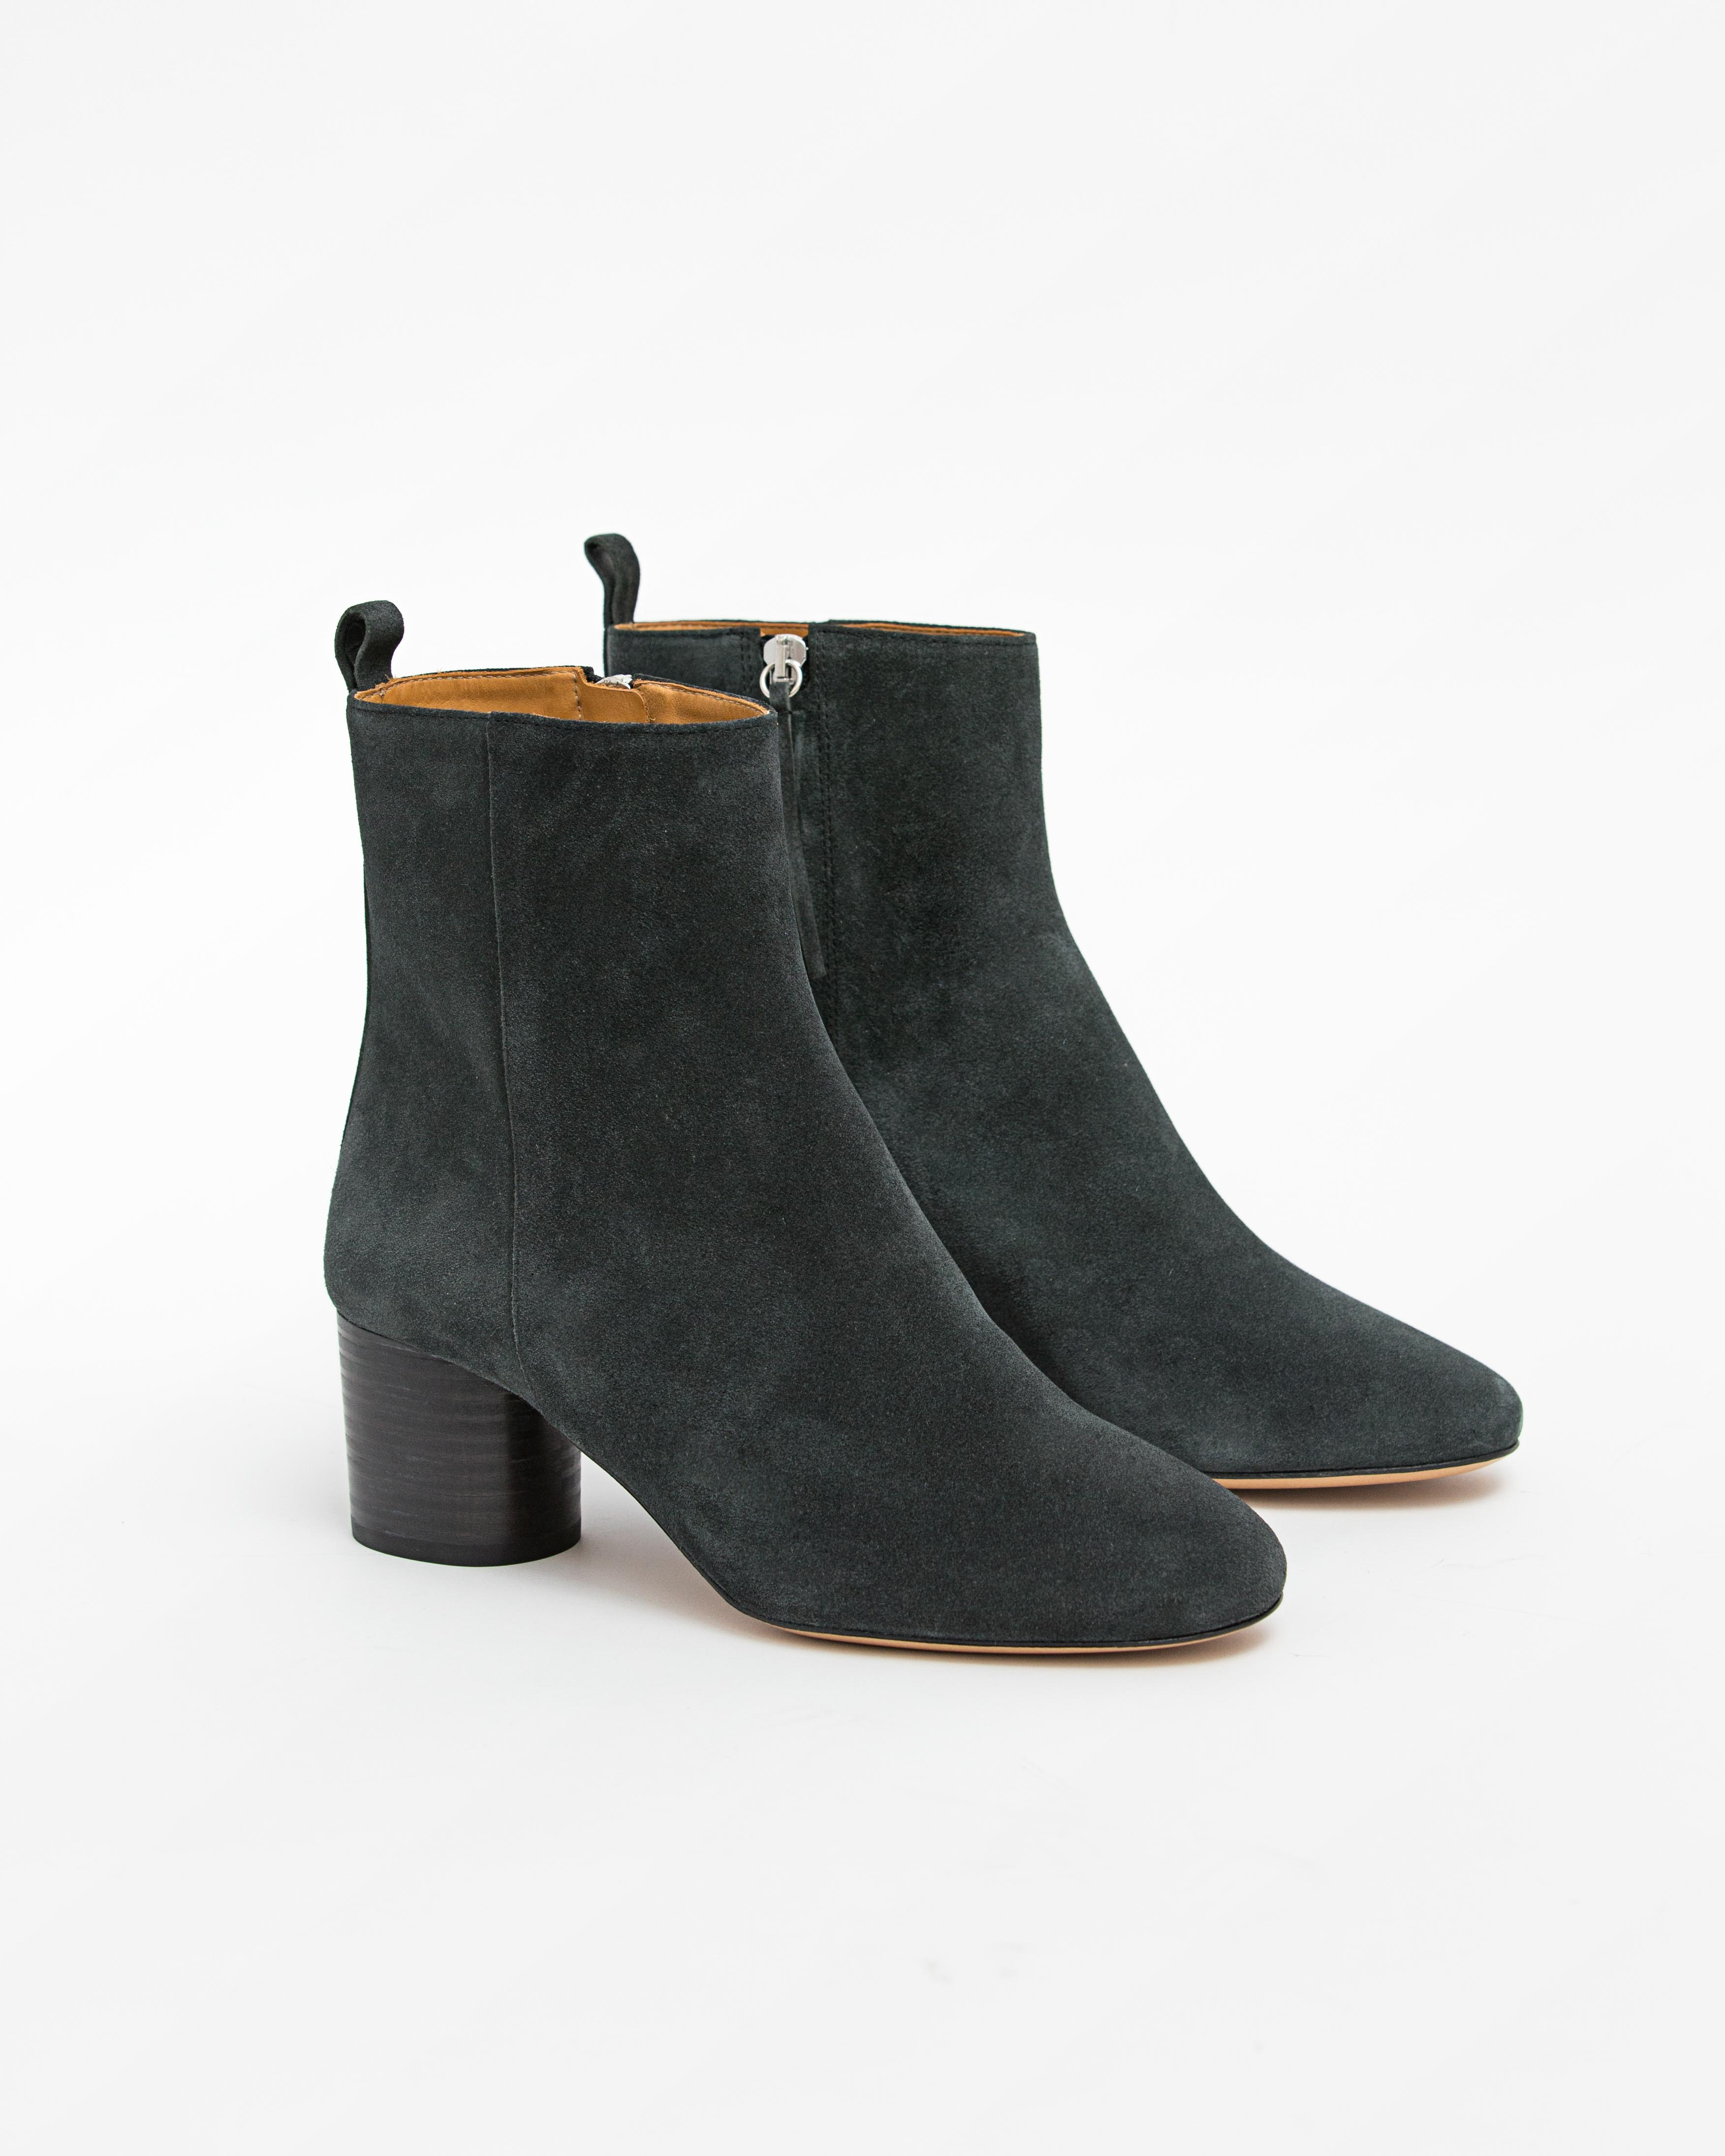 Isabel Marant Etoile 4 - Deyissa Suede Ankle Boot - Faded Black